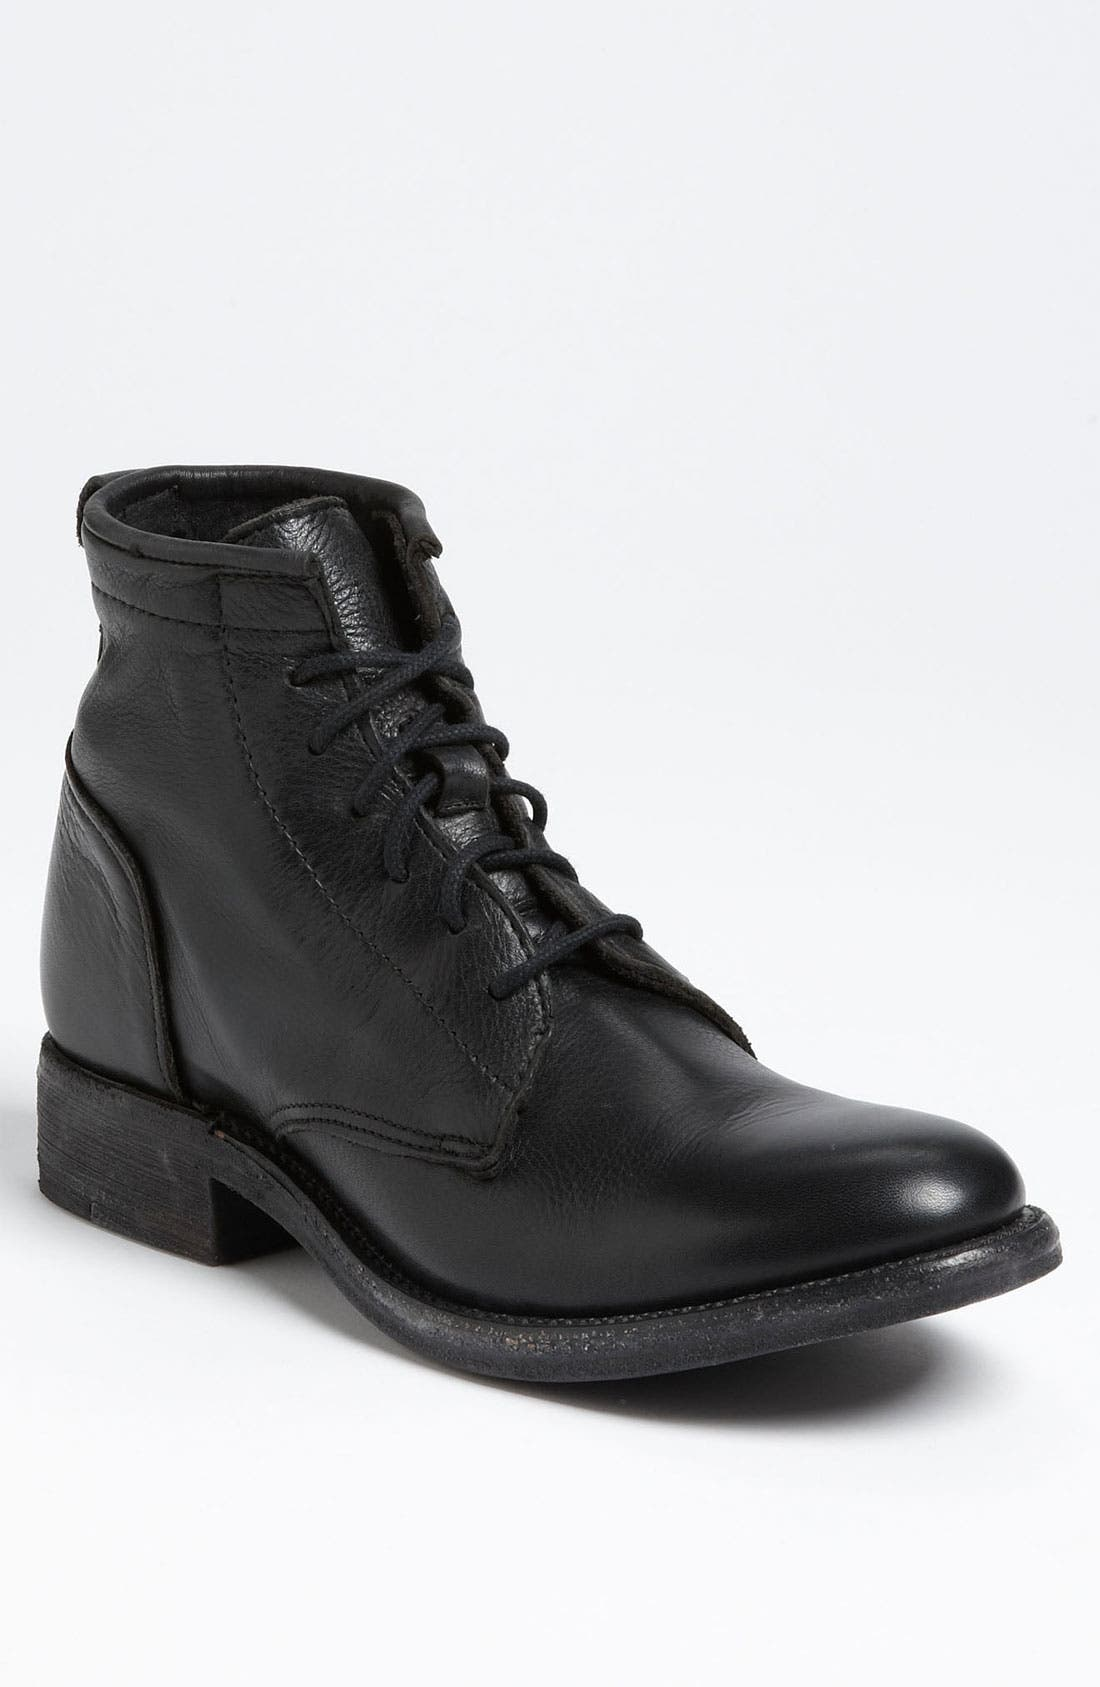 Alternate Image 1 Selected - Vintage Shoe Company 'Bluff' Boot